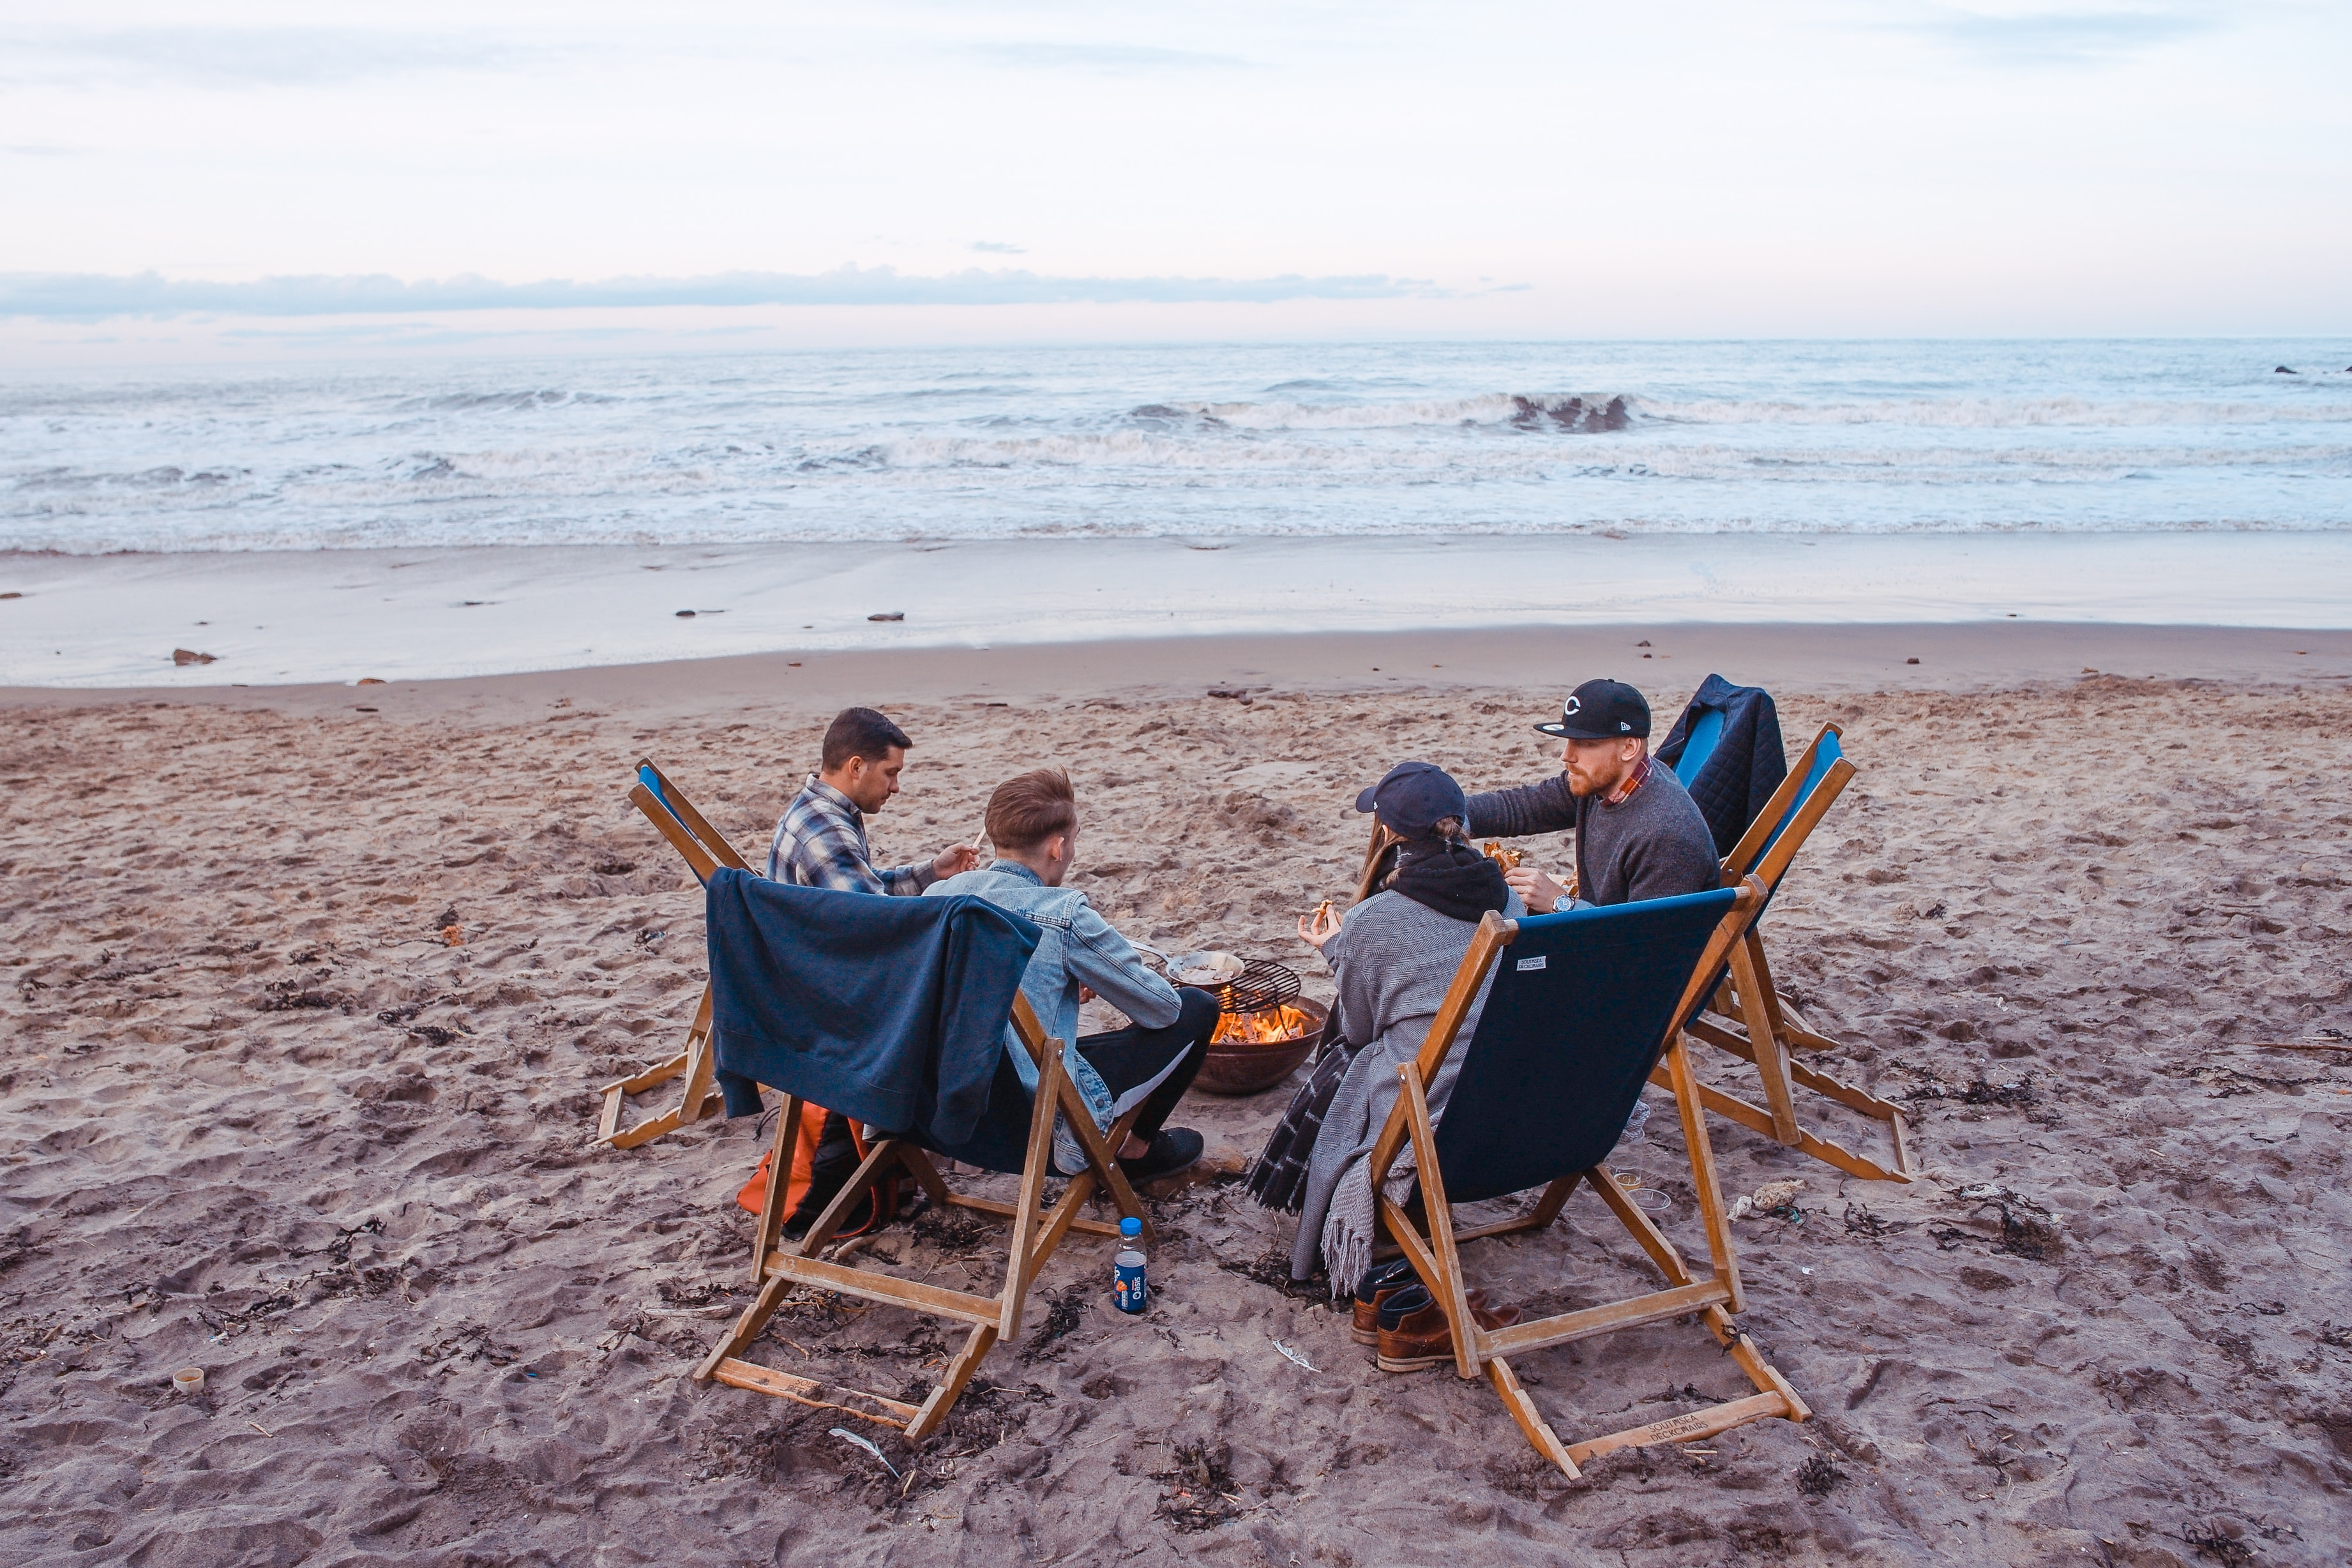 Three male and one female friend wit around a camp fire on a beach at dusk. They have prepared food and are eating together. While it's not always easy to invite non-believer friends to read the Bible with you, God will guide your time.